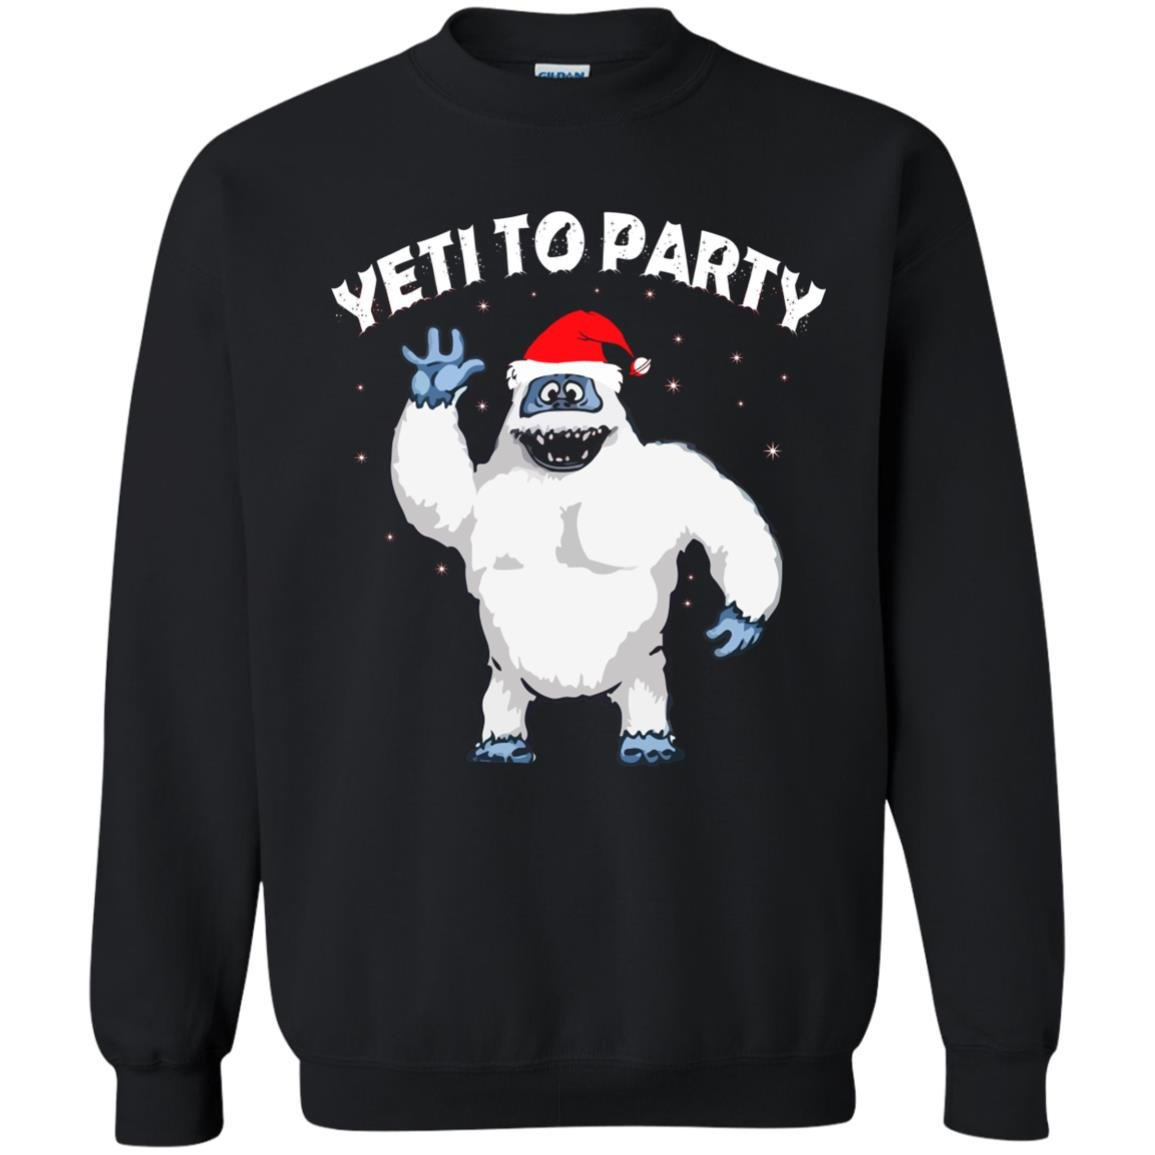 image 31 - Yeti to Party Christmas Sweater, Hoodie